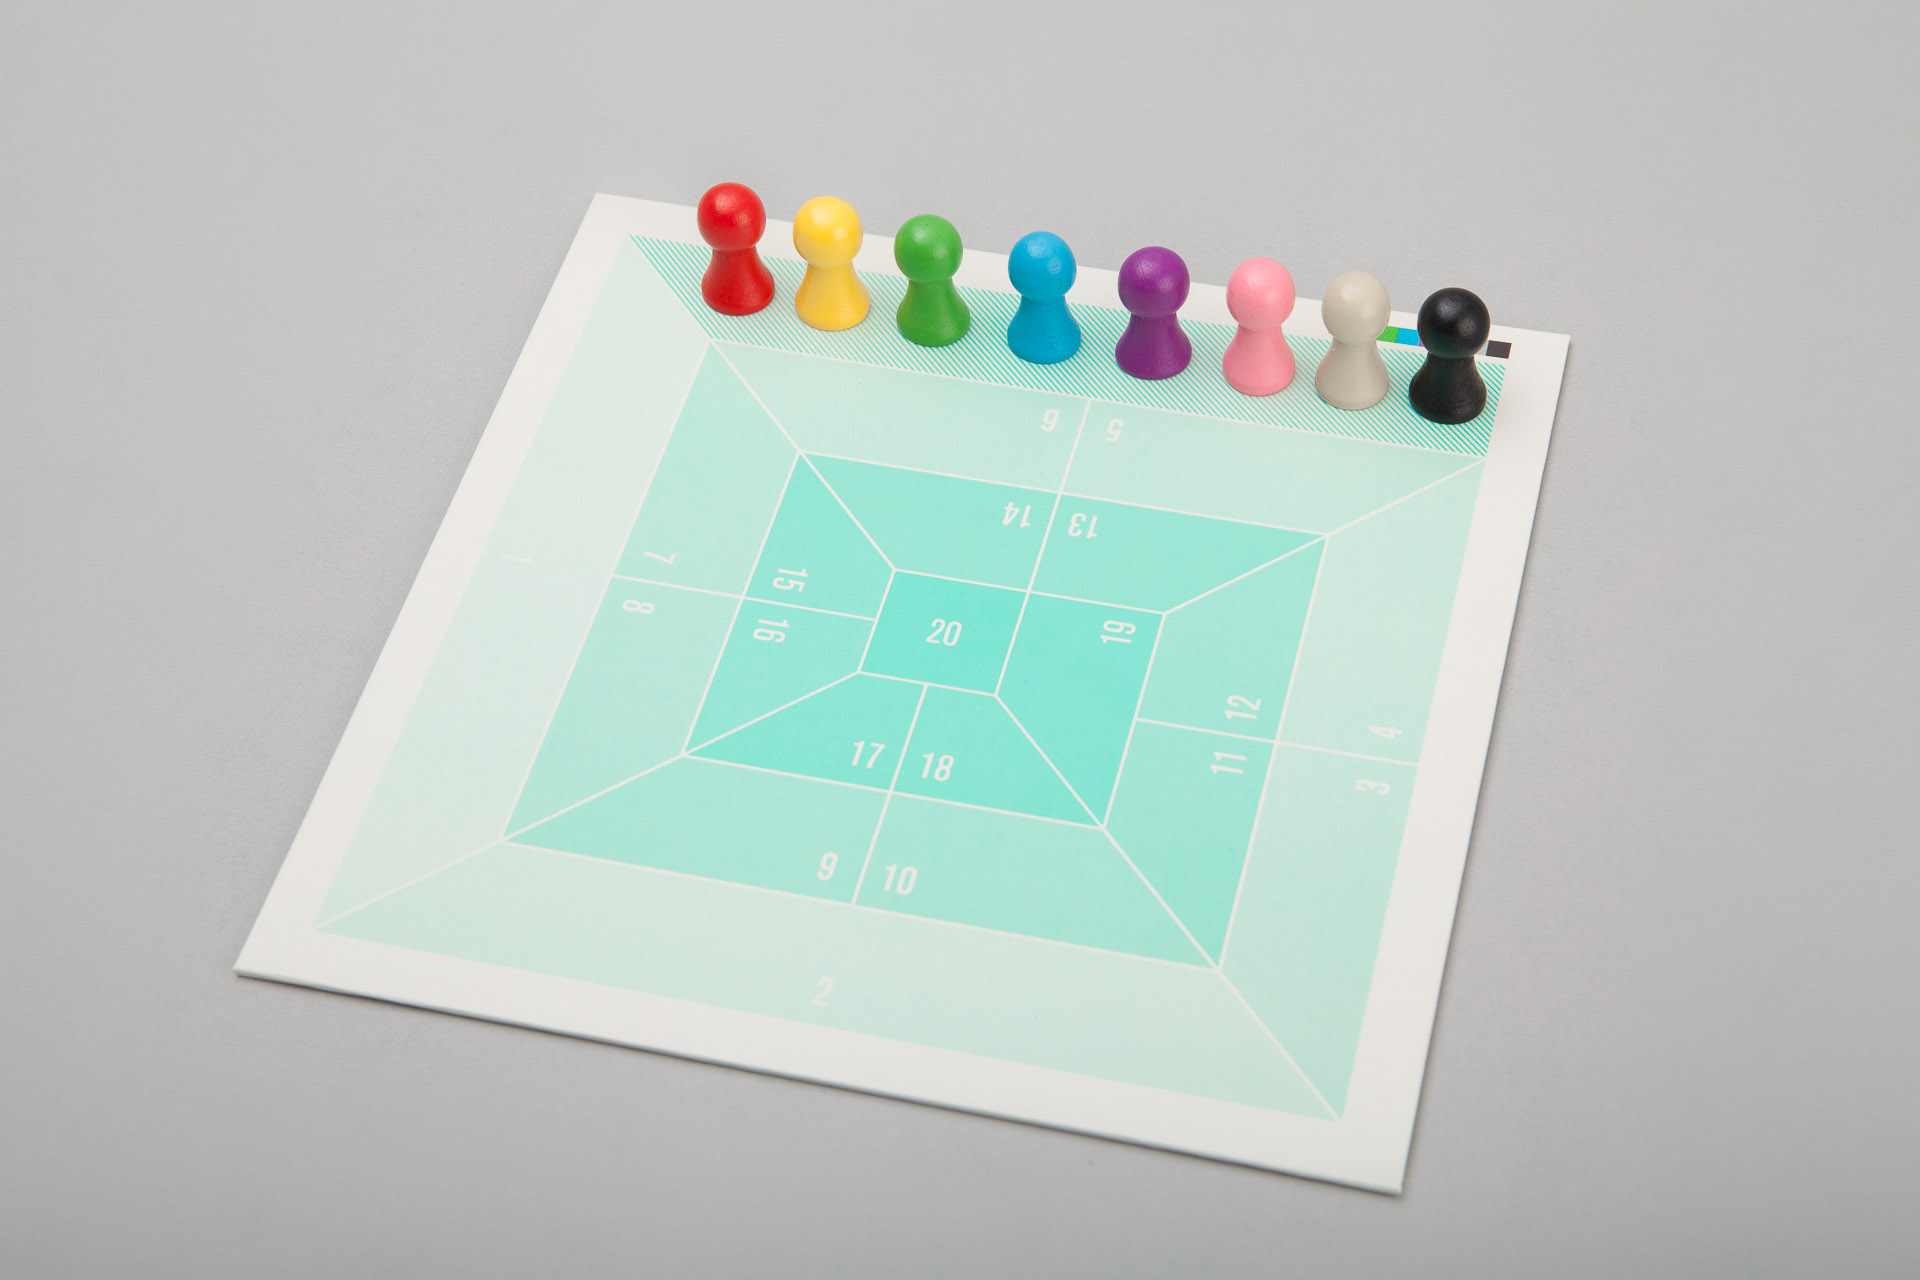 Board Game by Ninja Print